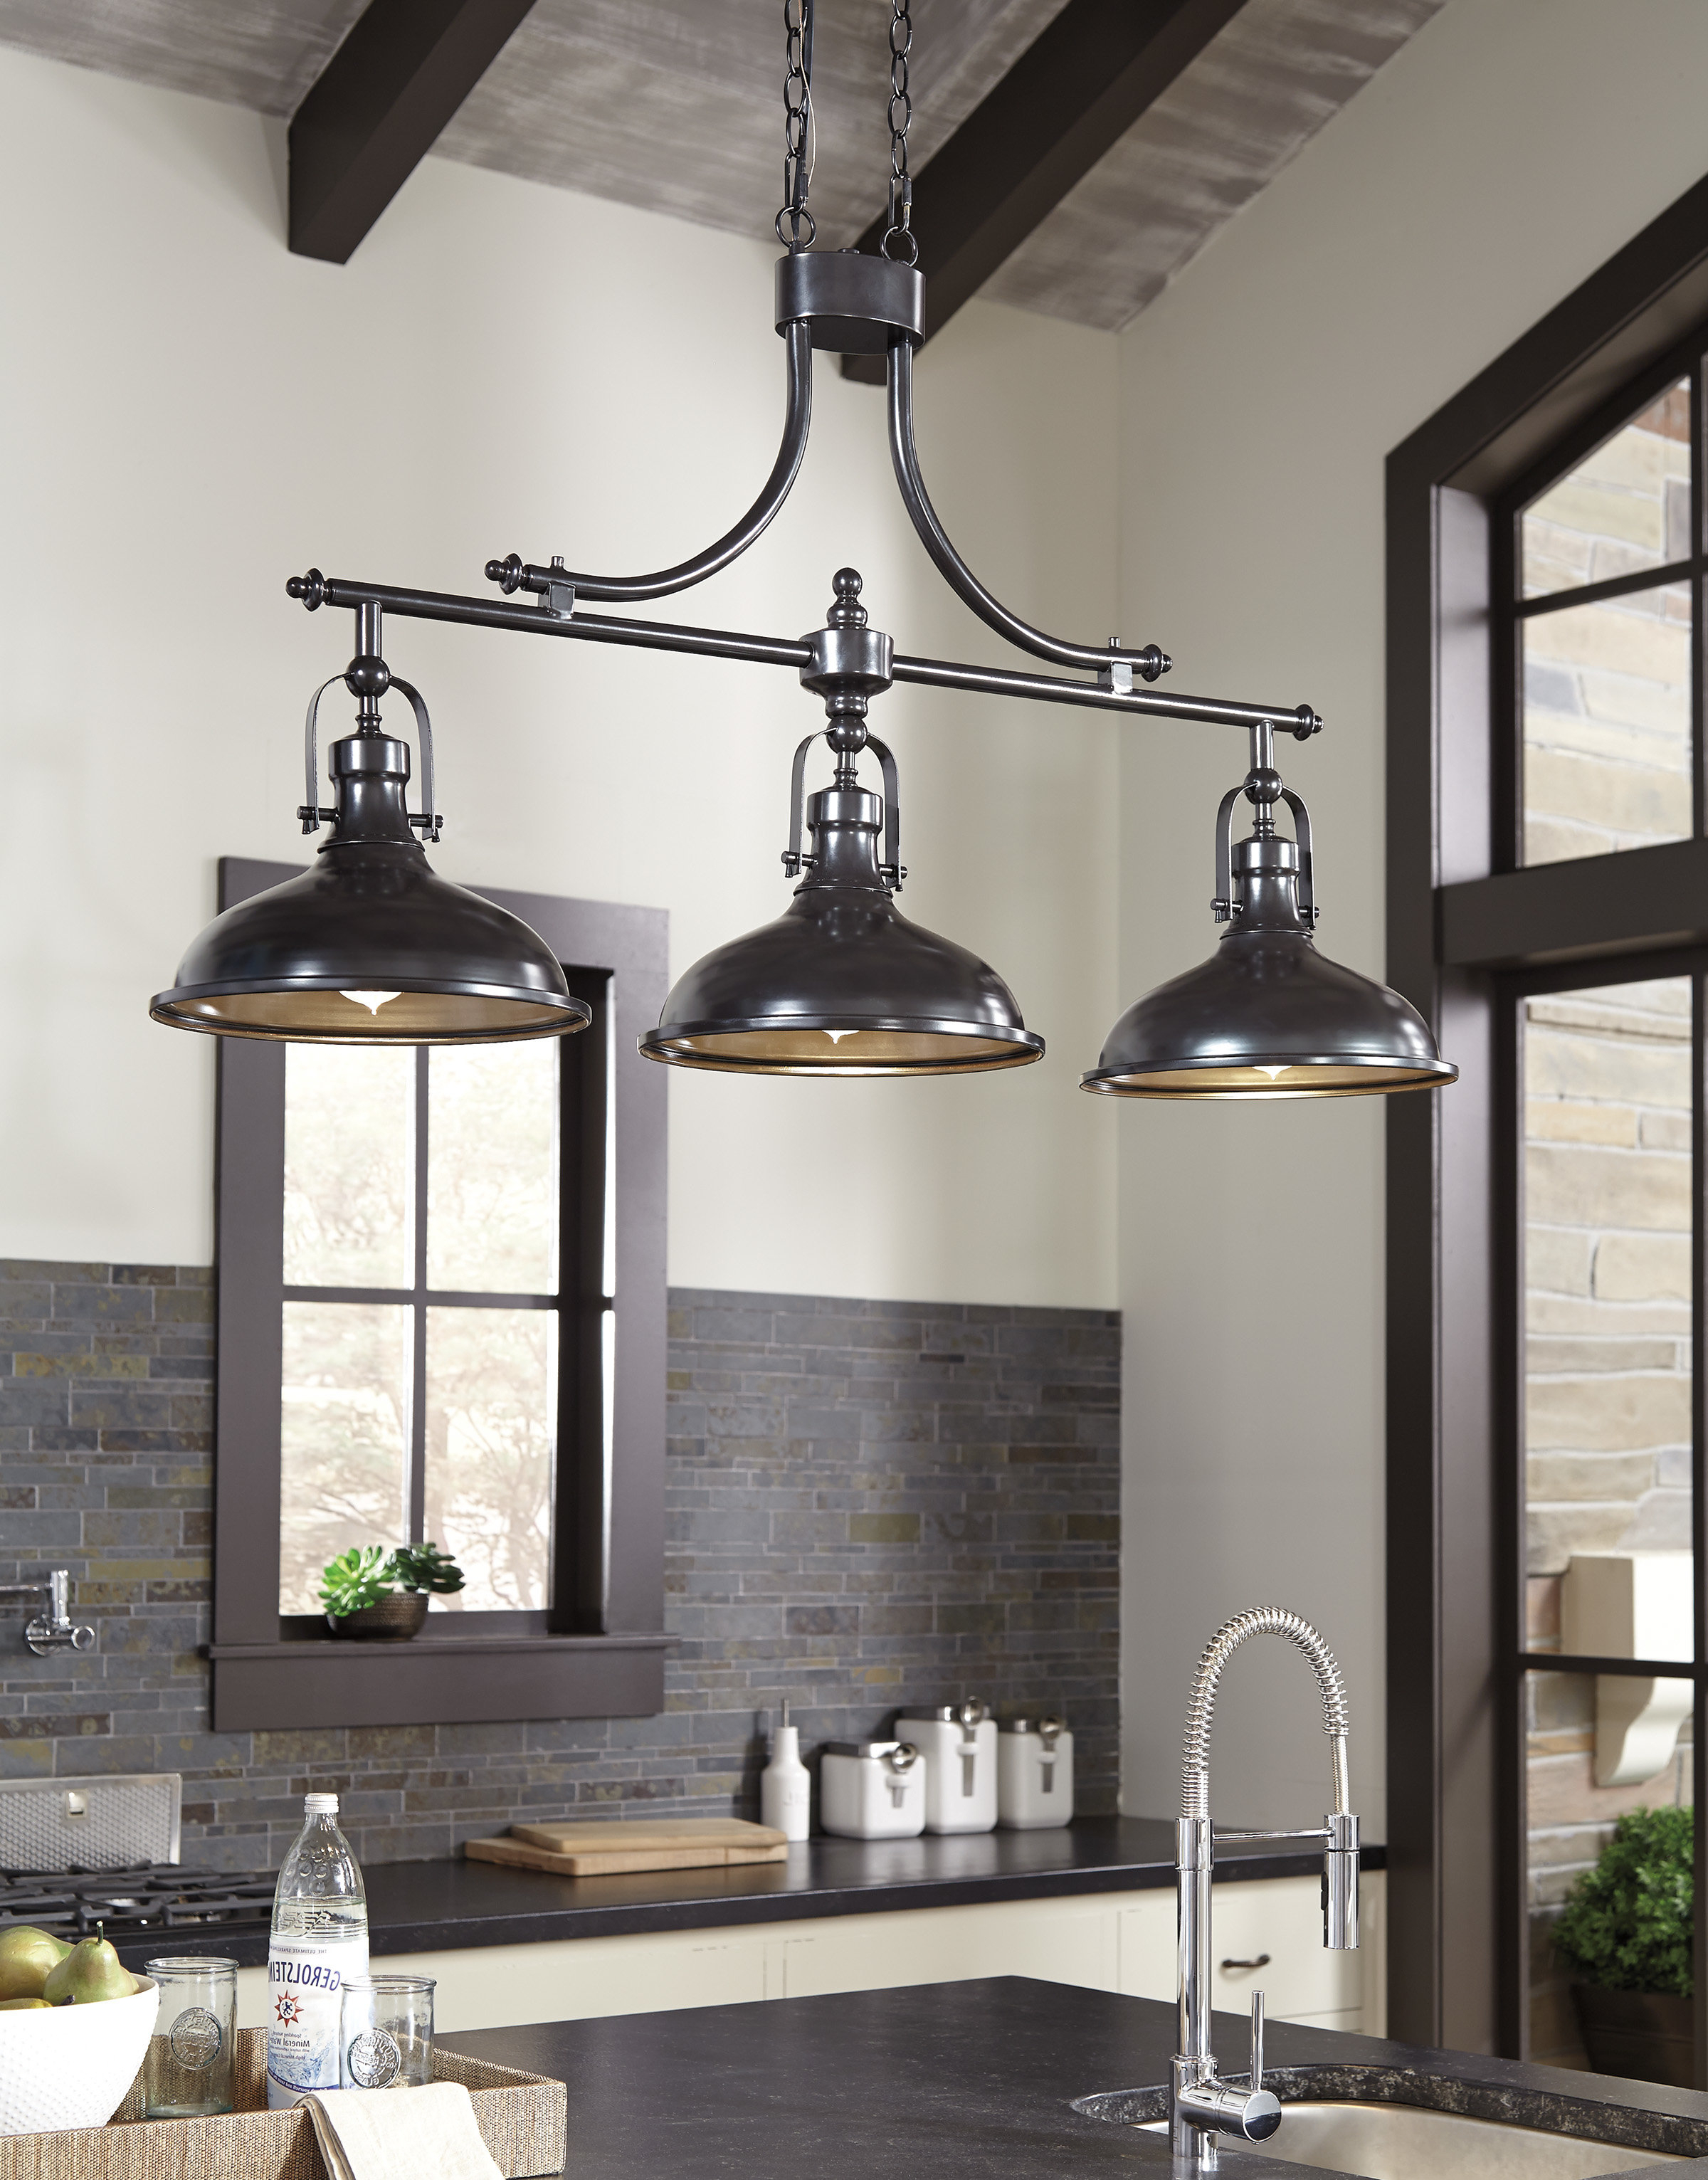 Birch Lane For Most Current Ariel 2 Light Kitchen Island Dome Pendants (View 11 of 25)